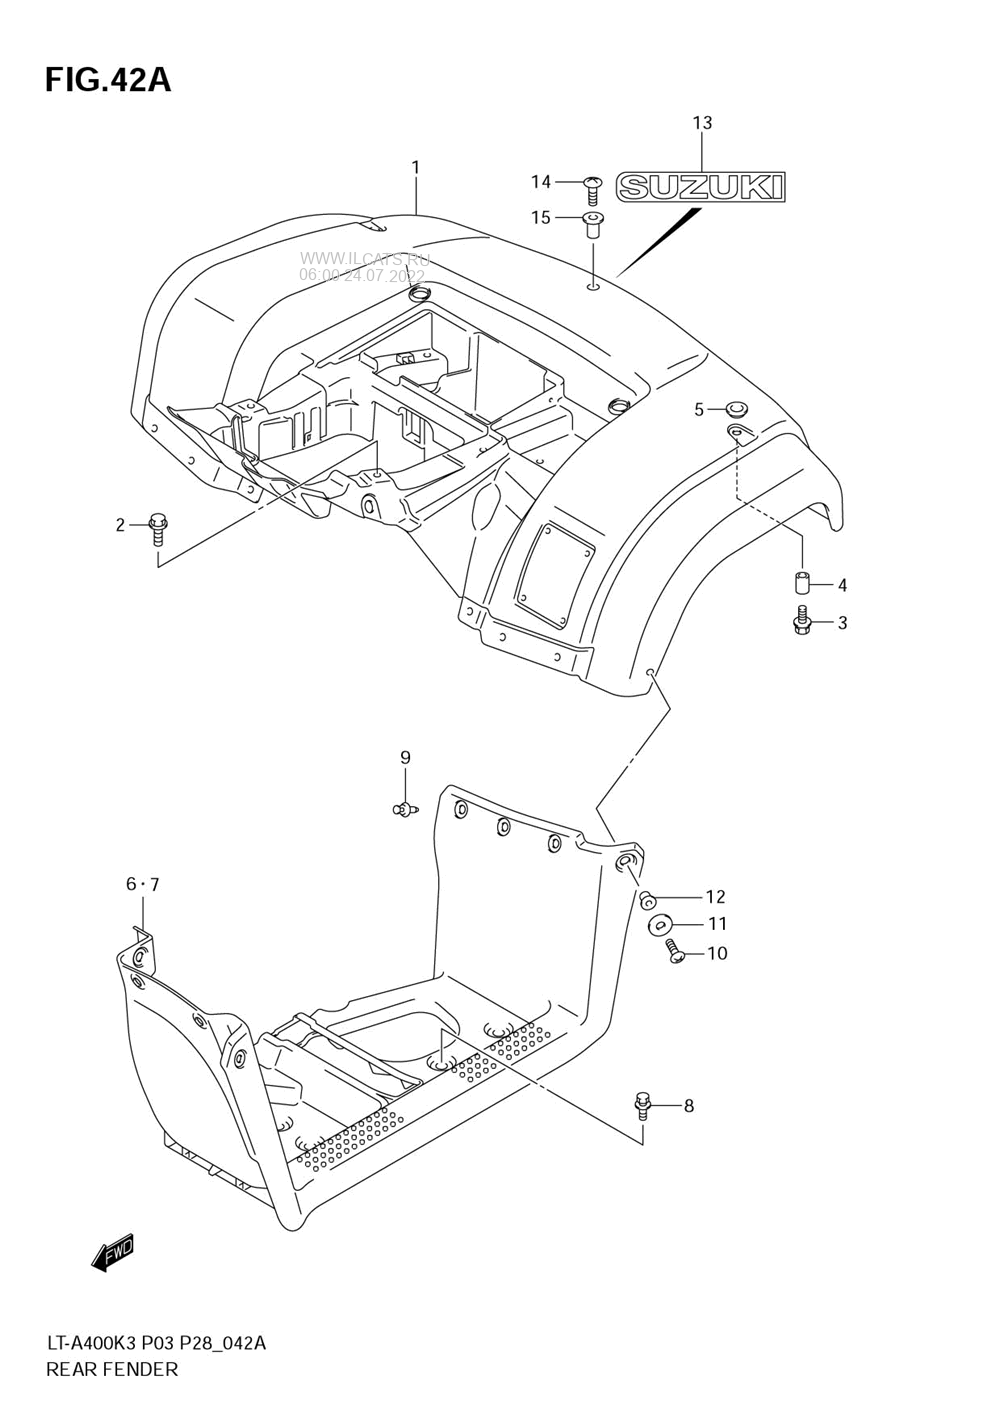 Suzuki atv parts diagram